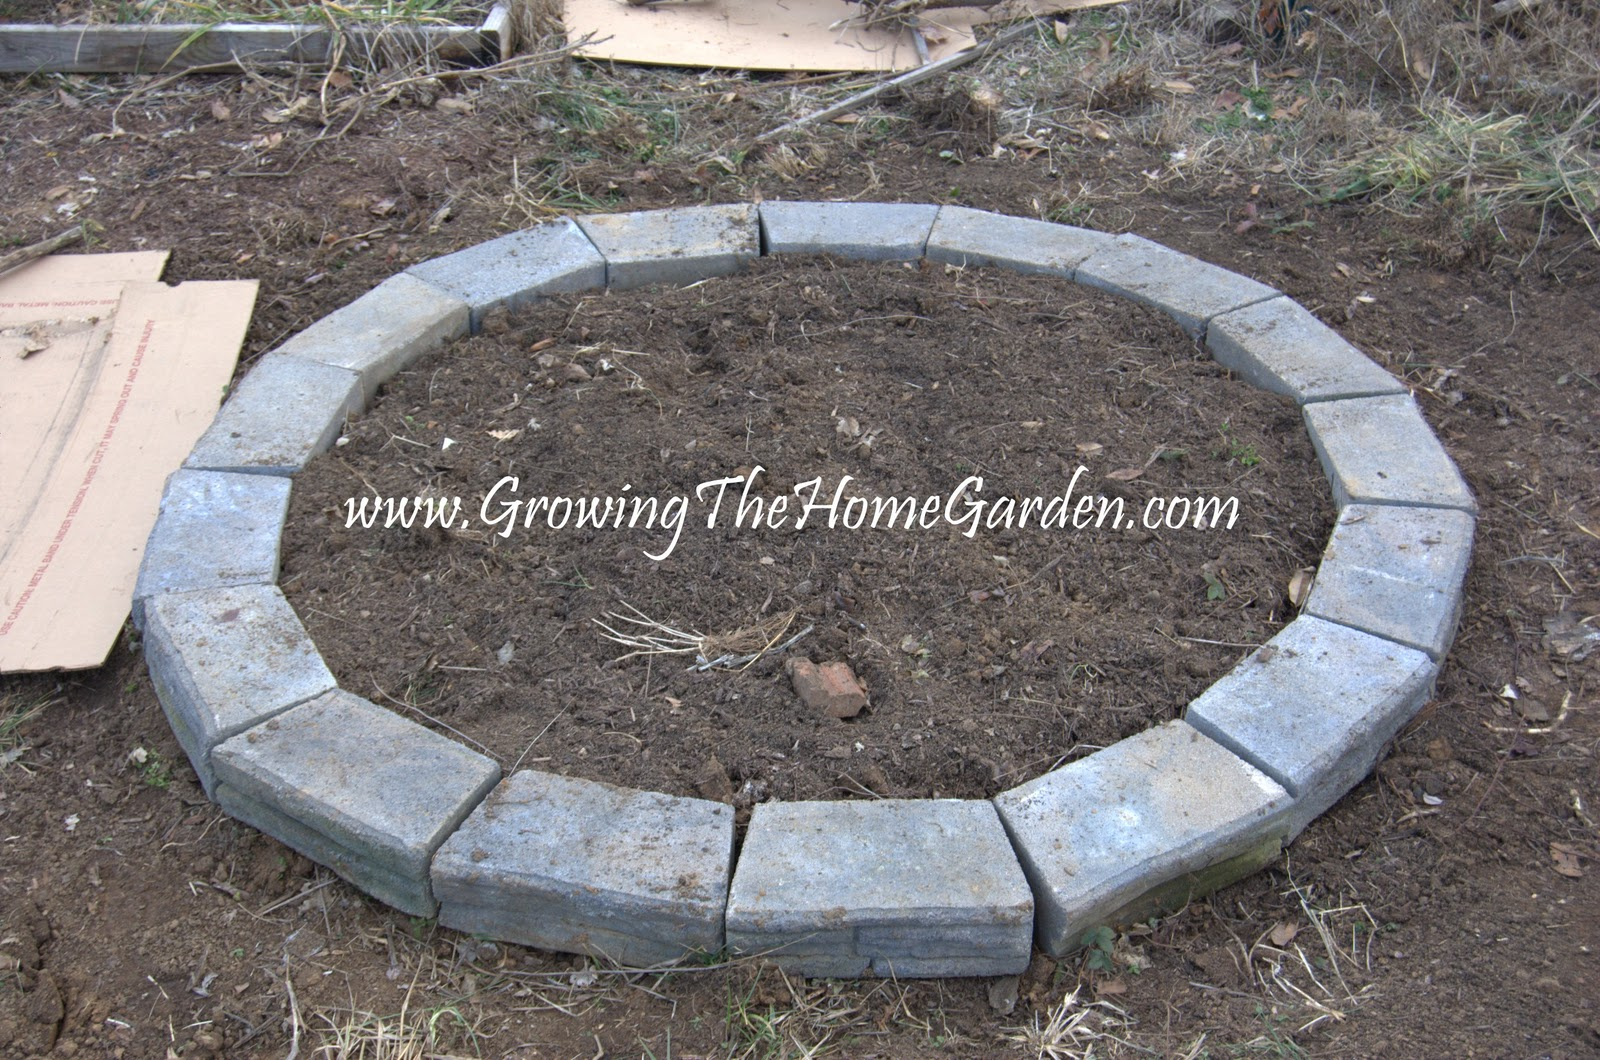 Circular Bed The Circular Raised Bed Growing The Home Garden